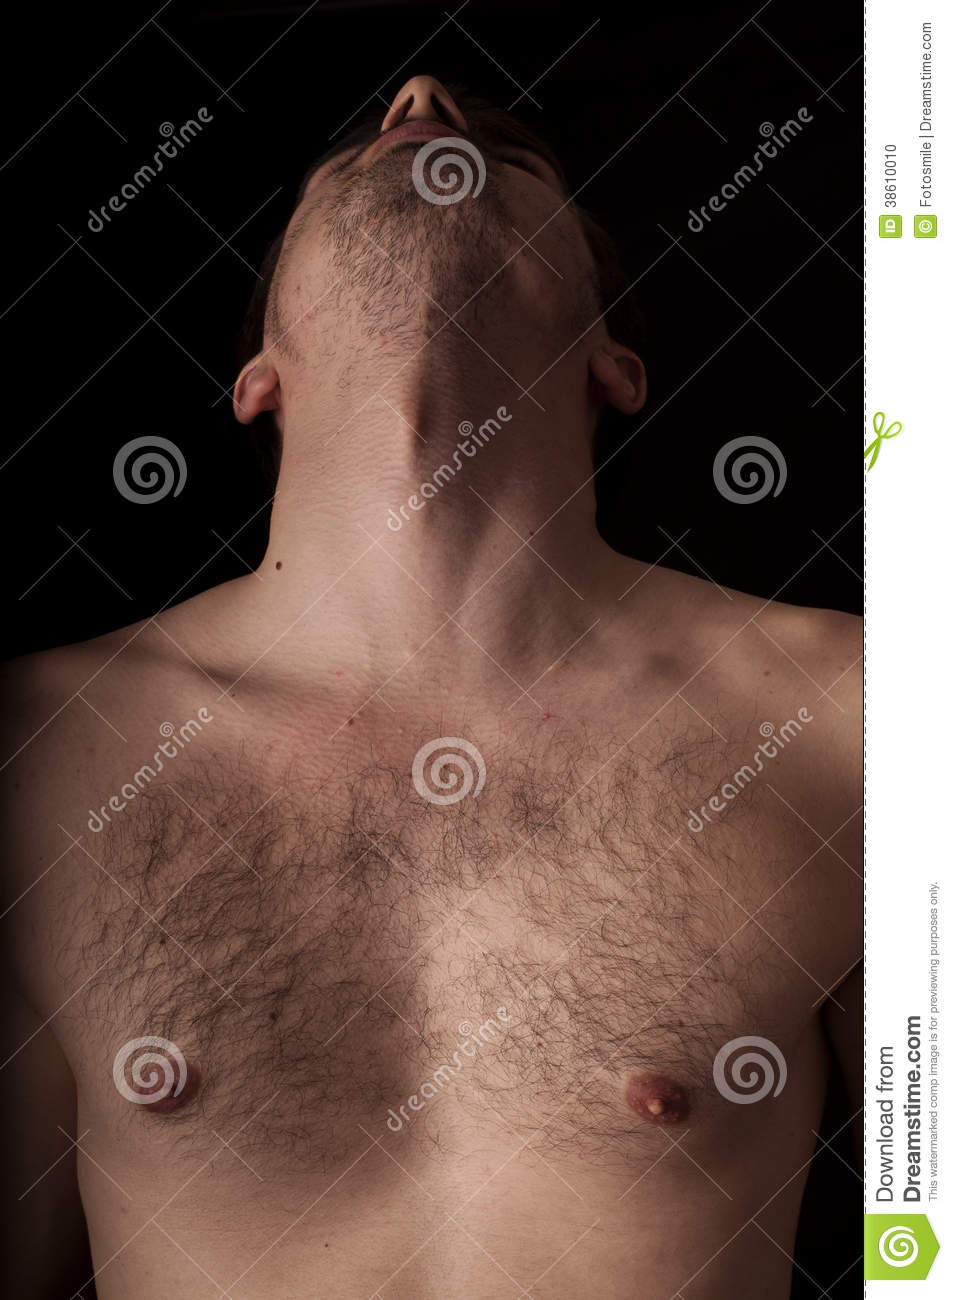 Chest and neck